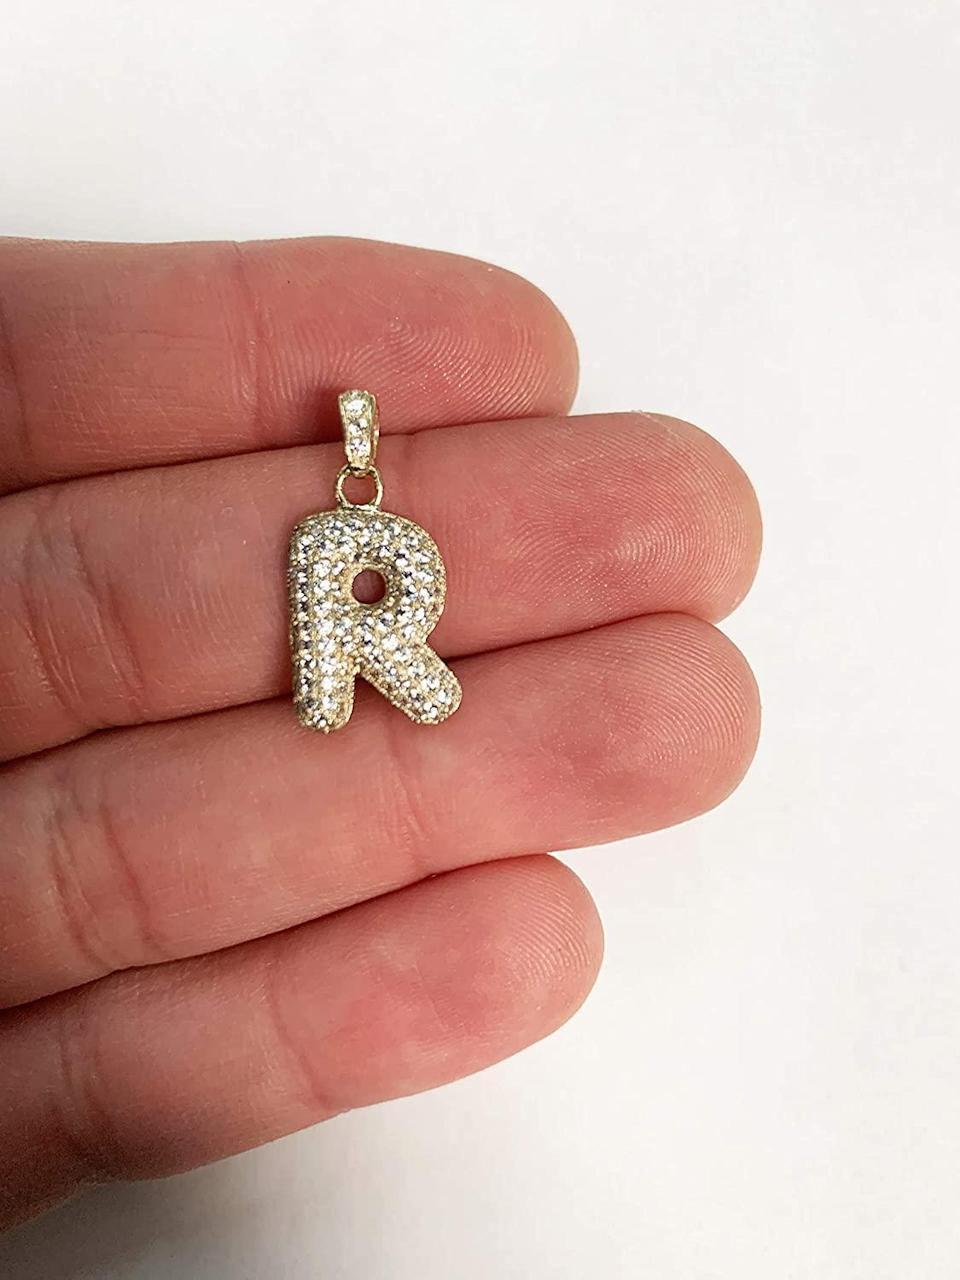 """<h3>Ice On Fire Solid Gold Initial Pendant<br></h3> <br>One of our favorite hacks for spending less coin on fine jewelry is to purchase a precious pendant and string it on an existing chain. Now that we've saved all that money, we're definitely splurging one or more of these delicious bubble-letter alphabet pendants — each is solid 10K gold studded with cubic zirconia.<br><br><em>Shop fine jewelry on <strong><a href=""""https://amzn.to/312Z4Am"""" rel=""""nofollow noopener"""" target=""""_blank"""" data-ylk=""""slk:Amazon"""" class=""""link rapid-noclick-resp"""">Amazon</a></strong></em><br><br><strong>Ice on Fire</strong> Solid Gold Bubble Initial Pendant, $, available at <a href=""""https://www.amazon.com/Ice-Fire-Jewelry-Available-Different/dp/B07ZG2C63B/ref=pd_d0_recs_v4_ac_6/138-1957692-6850243?th=1"""" rel=""""nofollow noopener"""" target=""""_blank"""" data-ylk=""""slk:Amazon"""" class=""""link rapid-noclick-resp"""">Amazon</a><br><br><br>"""